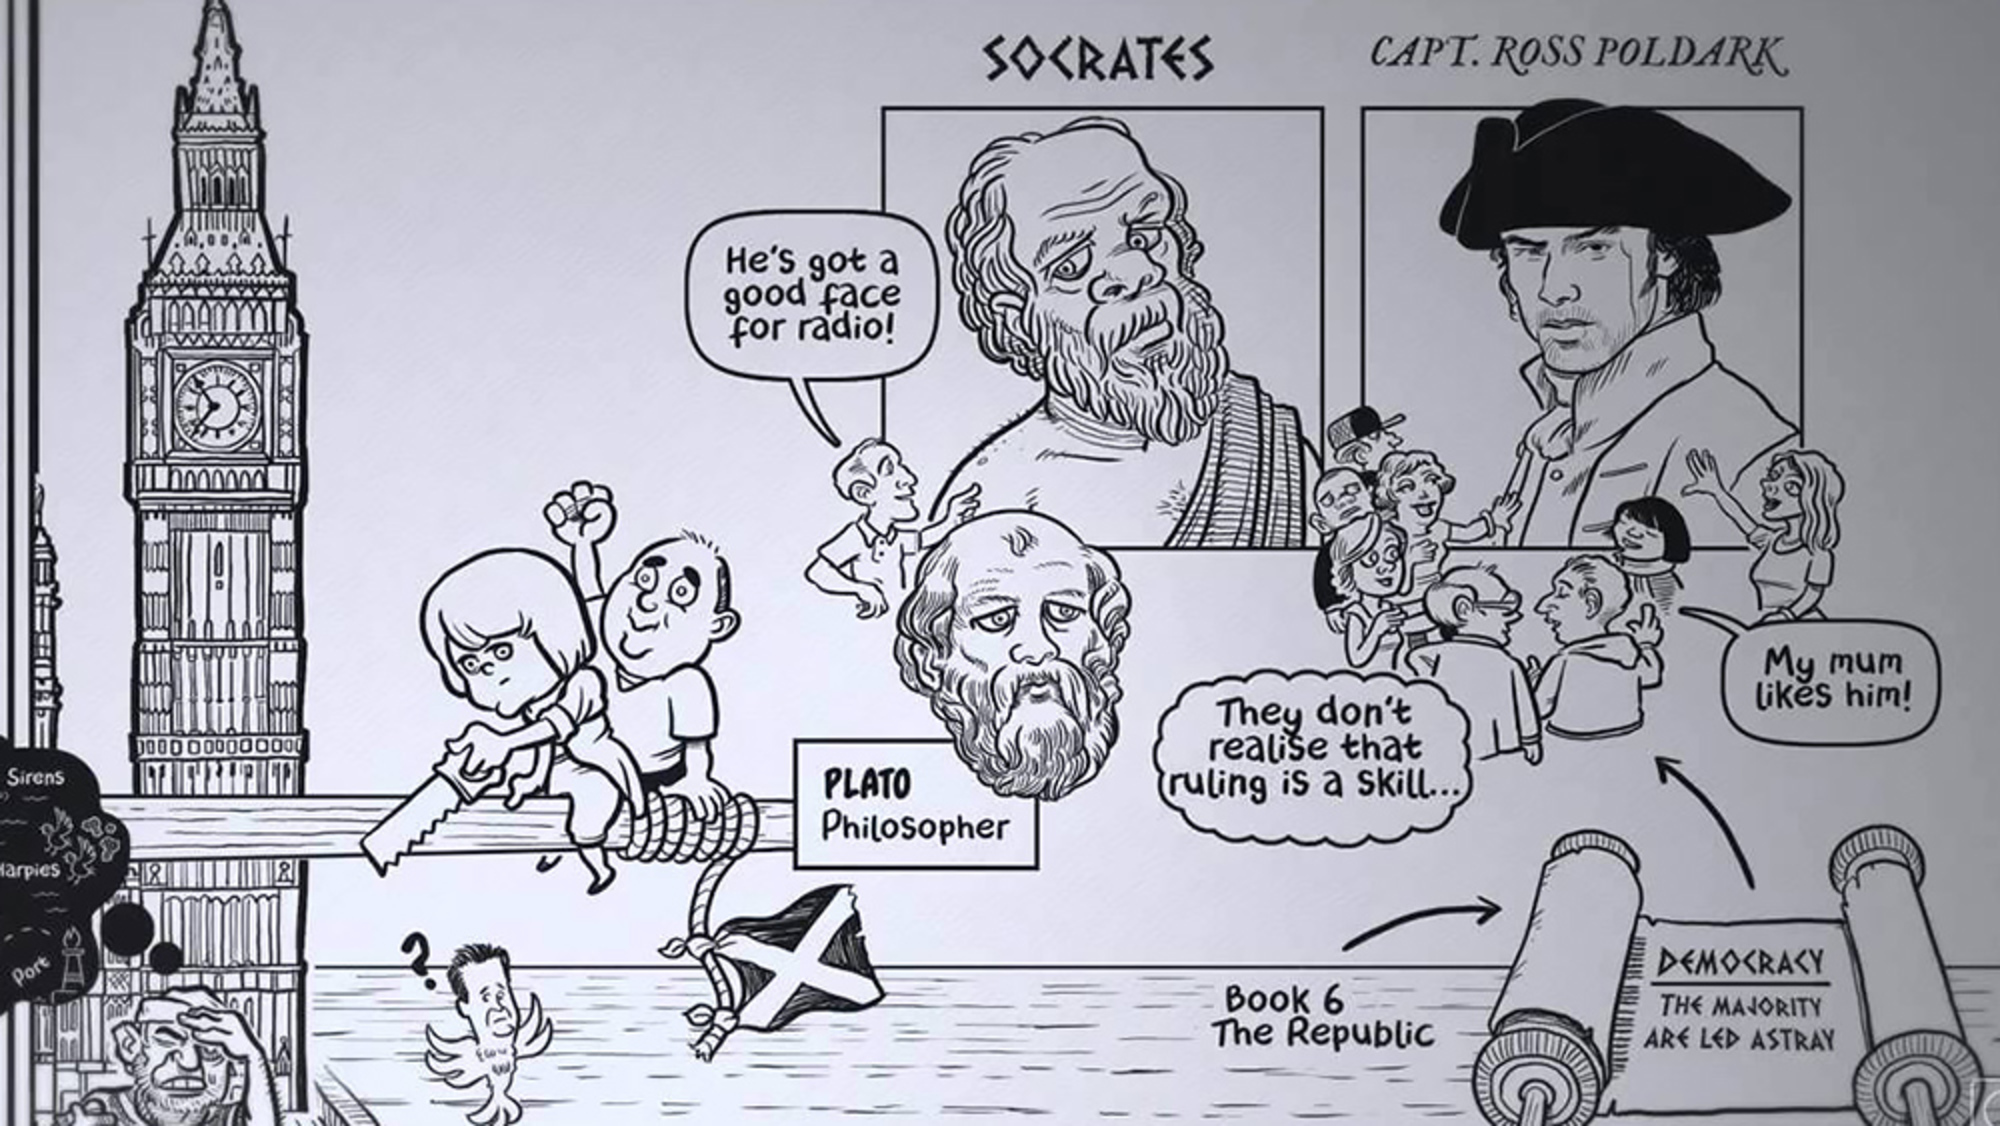 platos moral philosophy essay Intro to philosophy plato's gyges ring story - why be moral what is it to be just the question which socrates addresses in this passage is whether or not it is better to be just or unjust it is important to notice that in this essay from the republic.